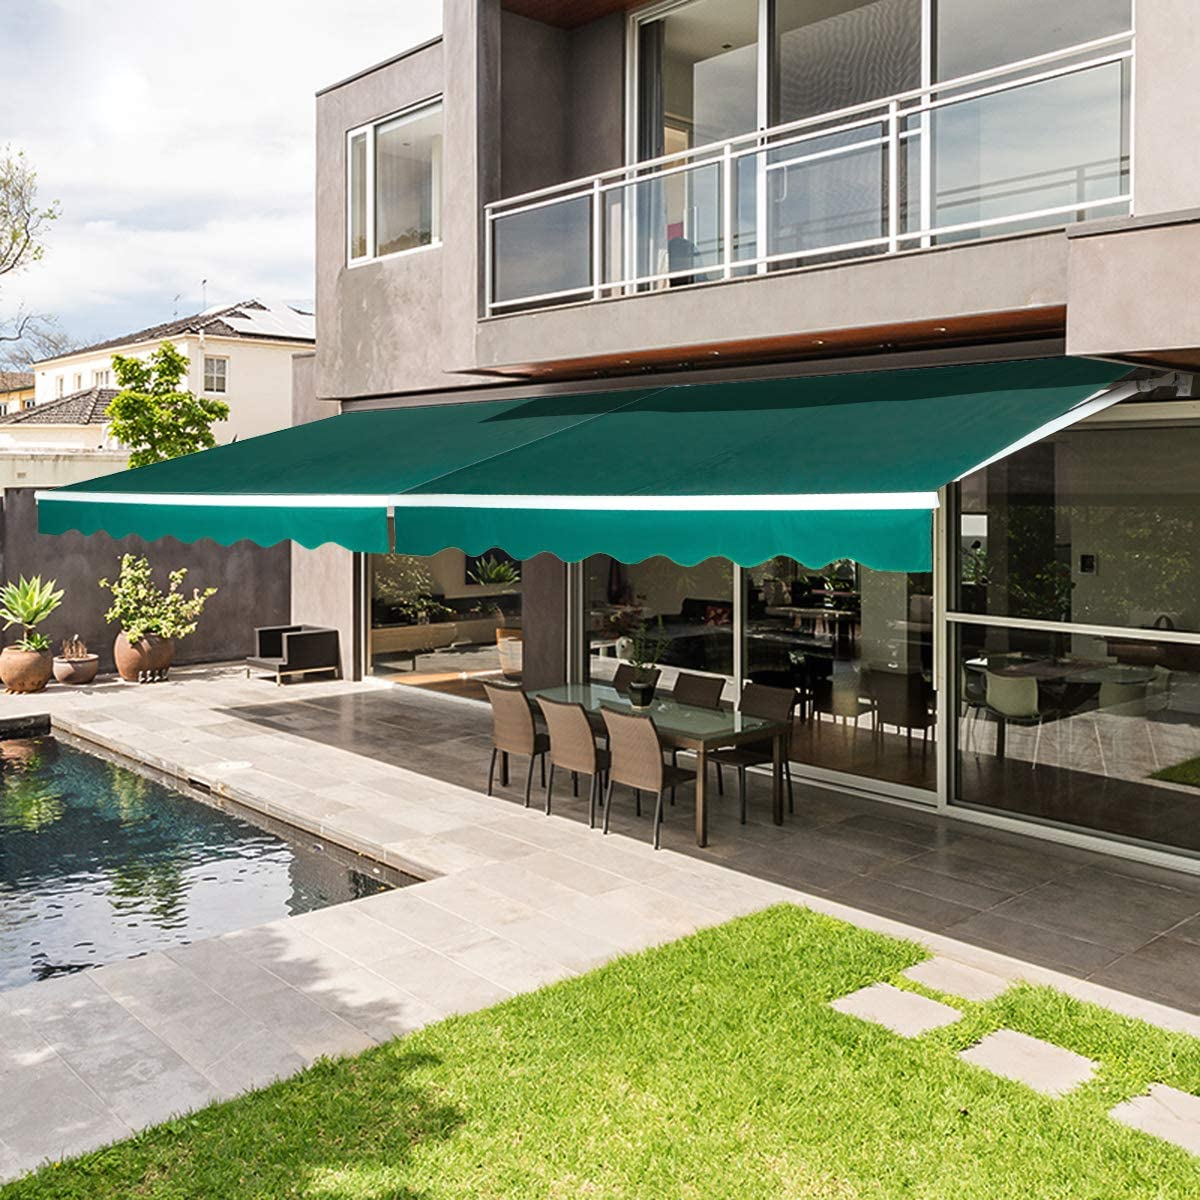 AECOJOY 8.2'×6.5' Patio Awning Retractable Sun Shade Awning Cover Outdoor Patio Canopy Sunsetter Deck Awnings with Manual Crank Handle, Dark Green